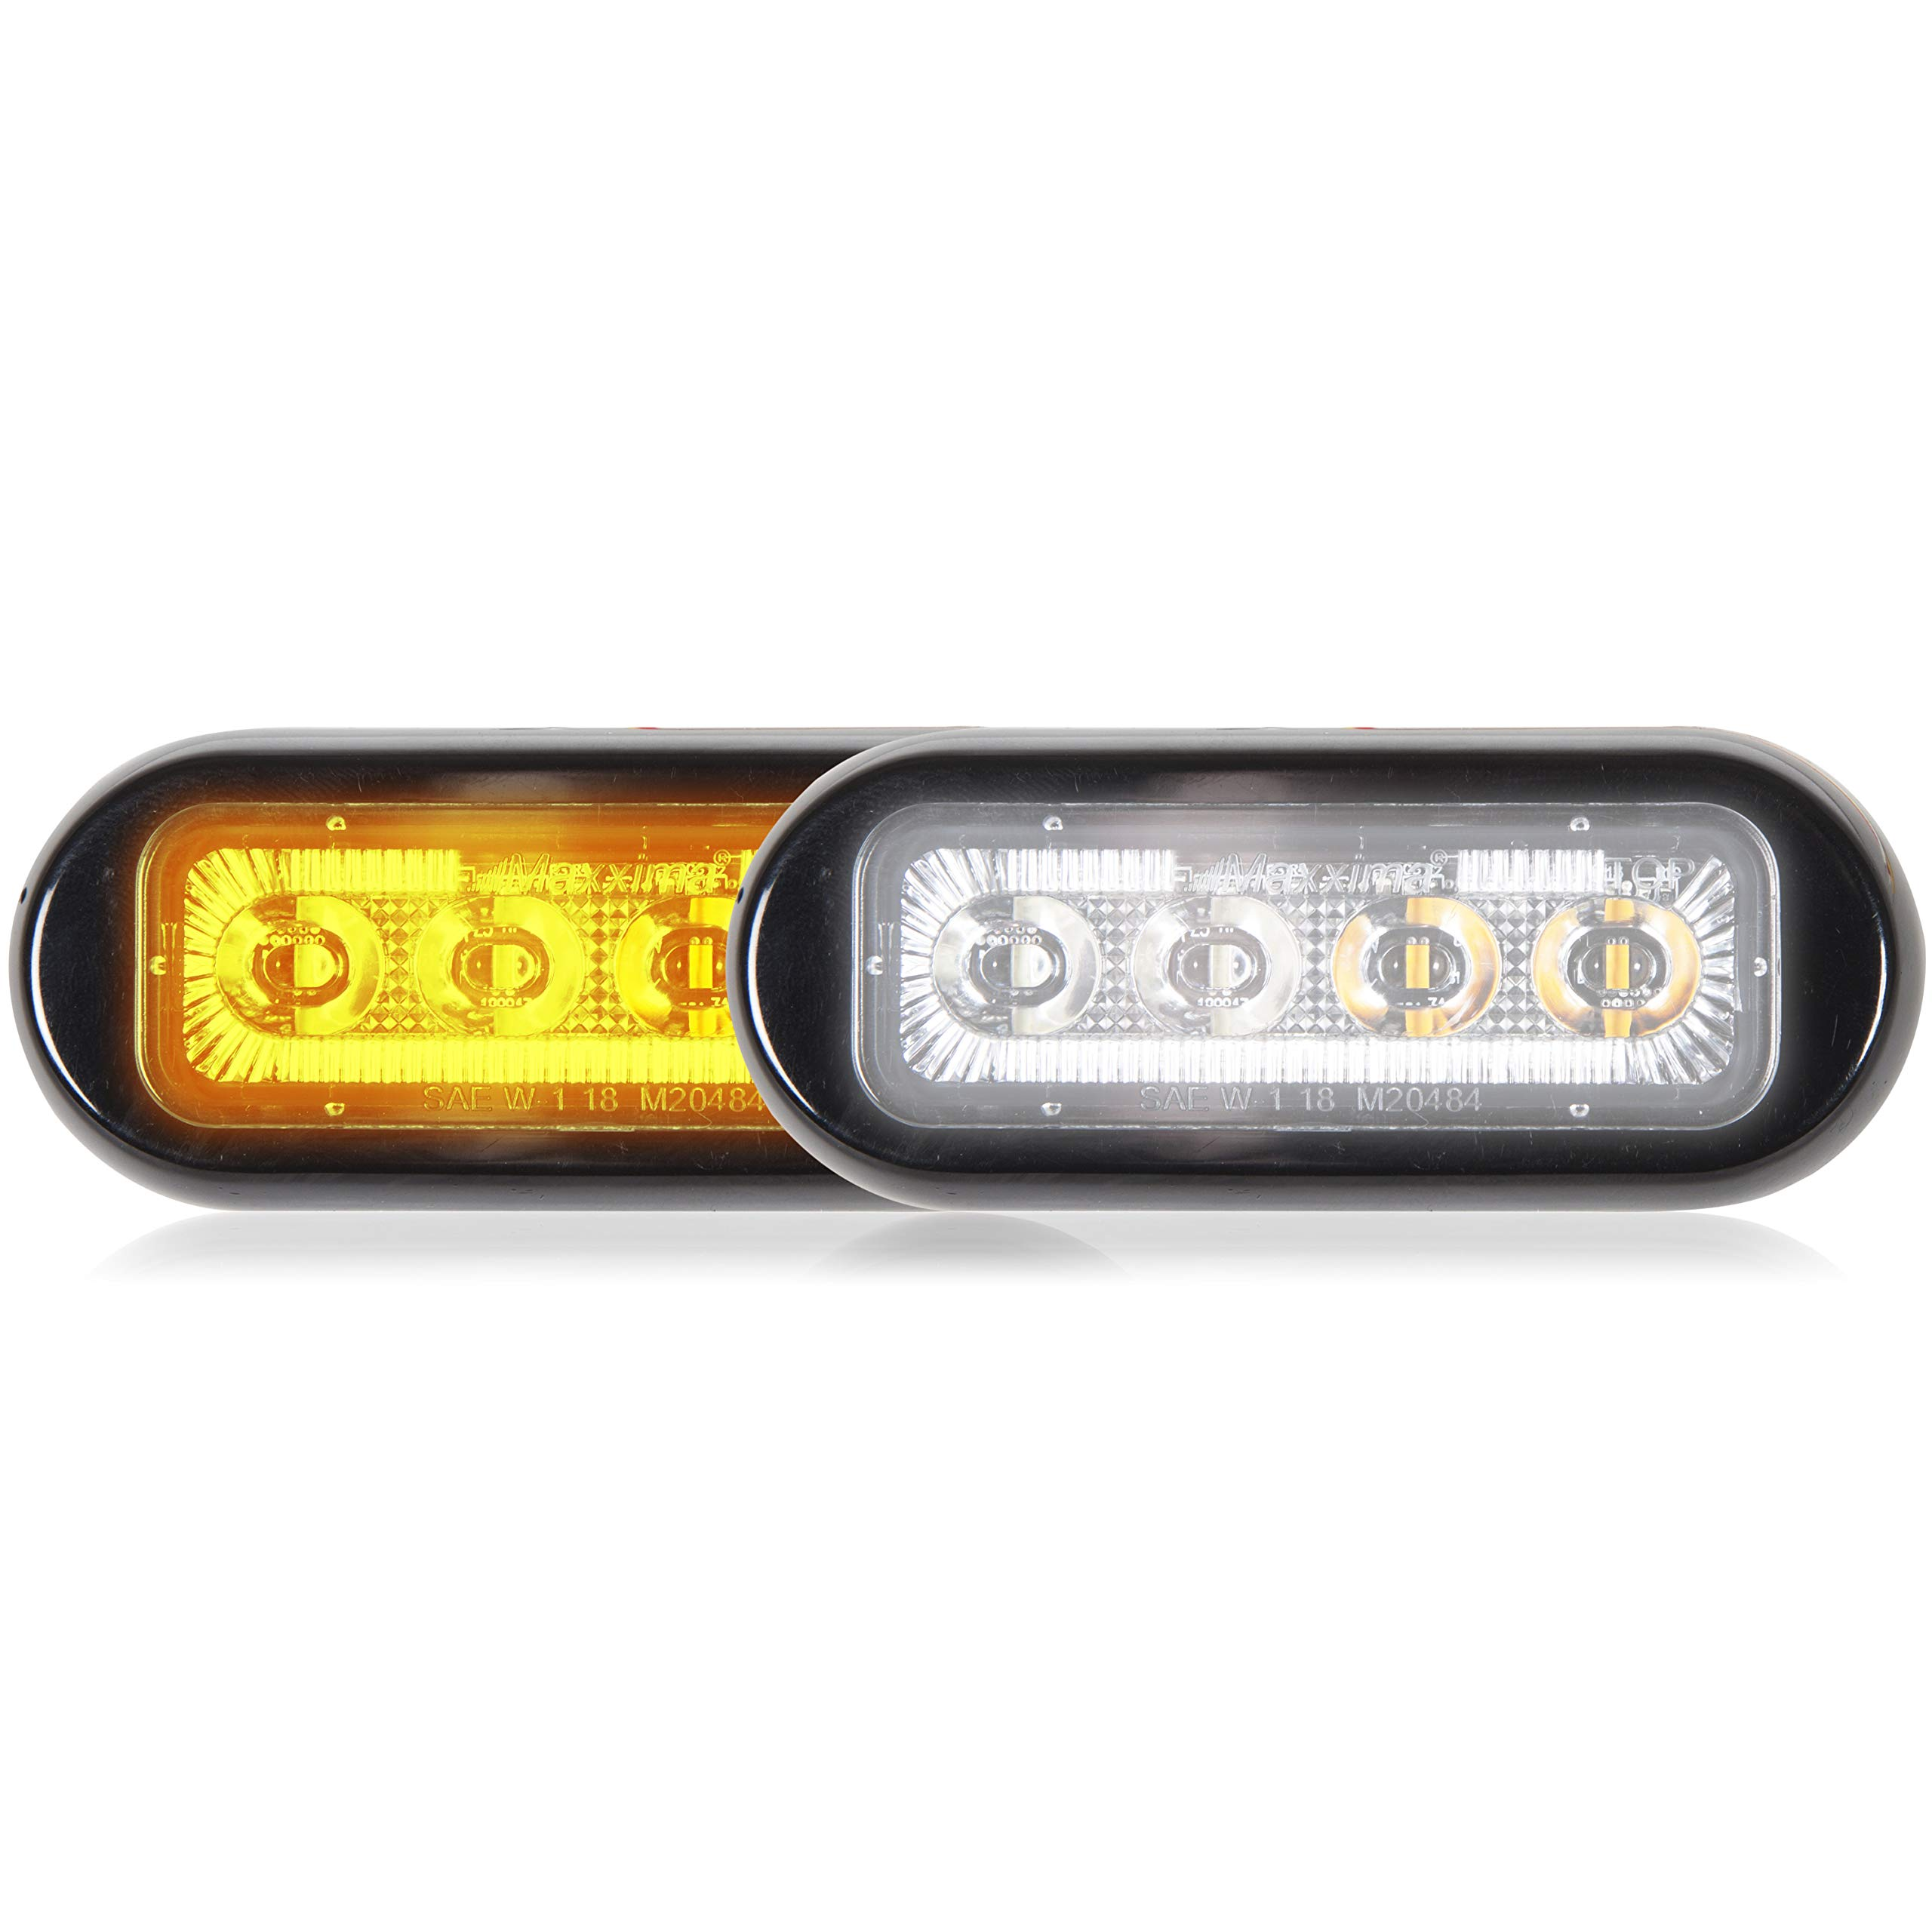 Maxxima M20484YWCL-DC 8 LED Rectangular Surface Mount Warning & Emergency Dual Color Amber/White Clear Lens